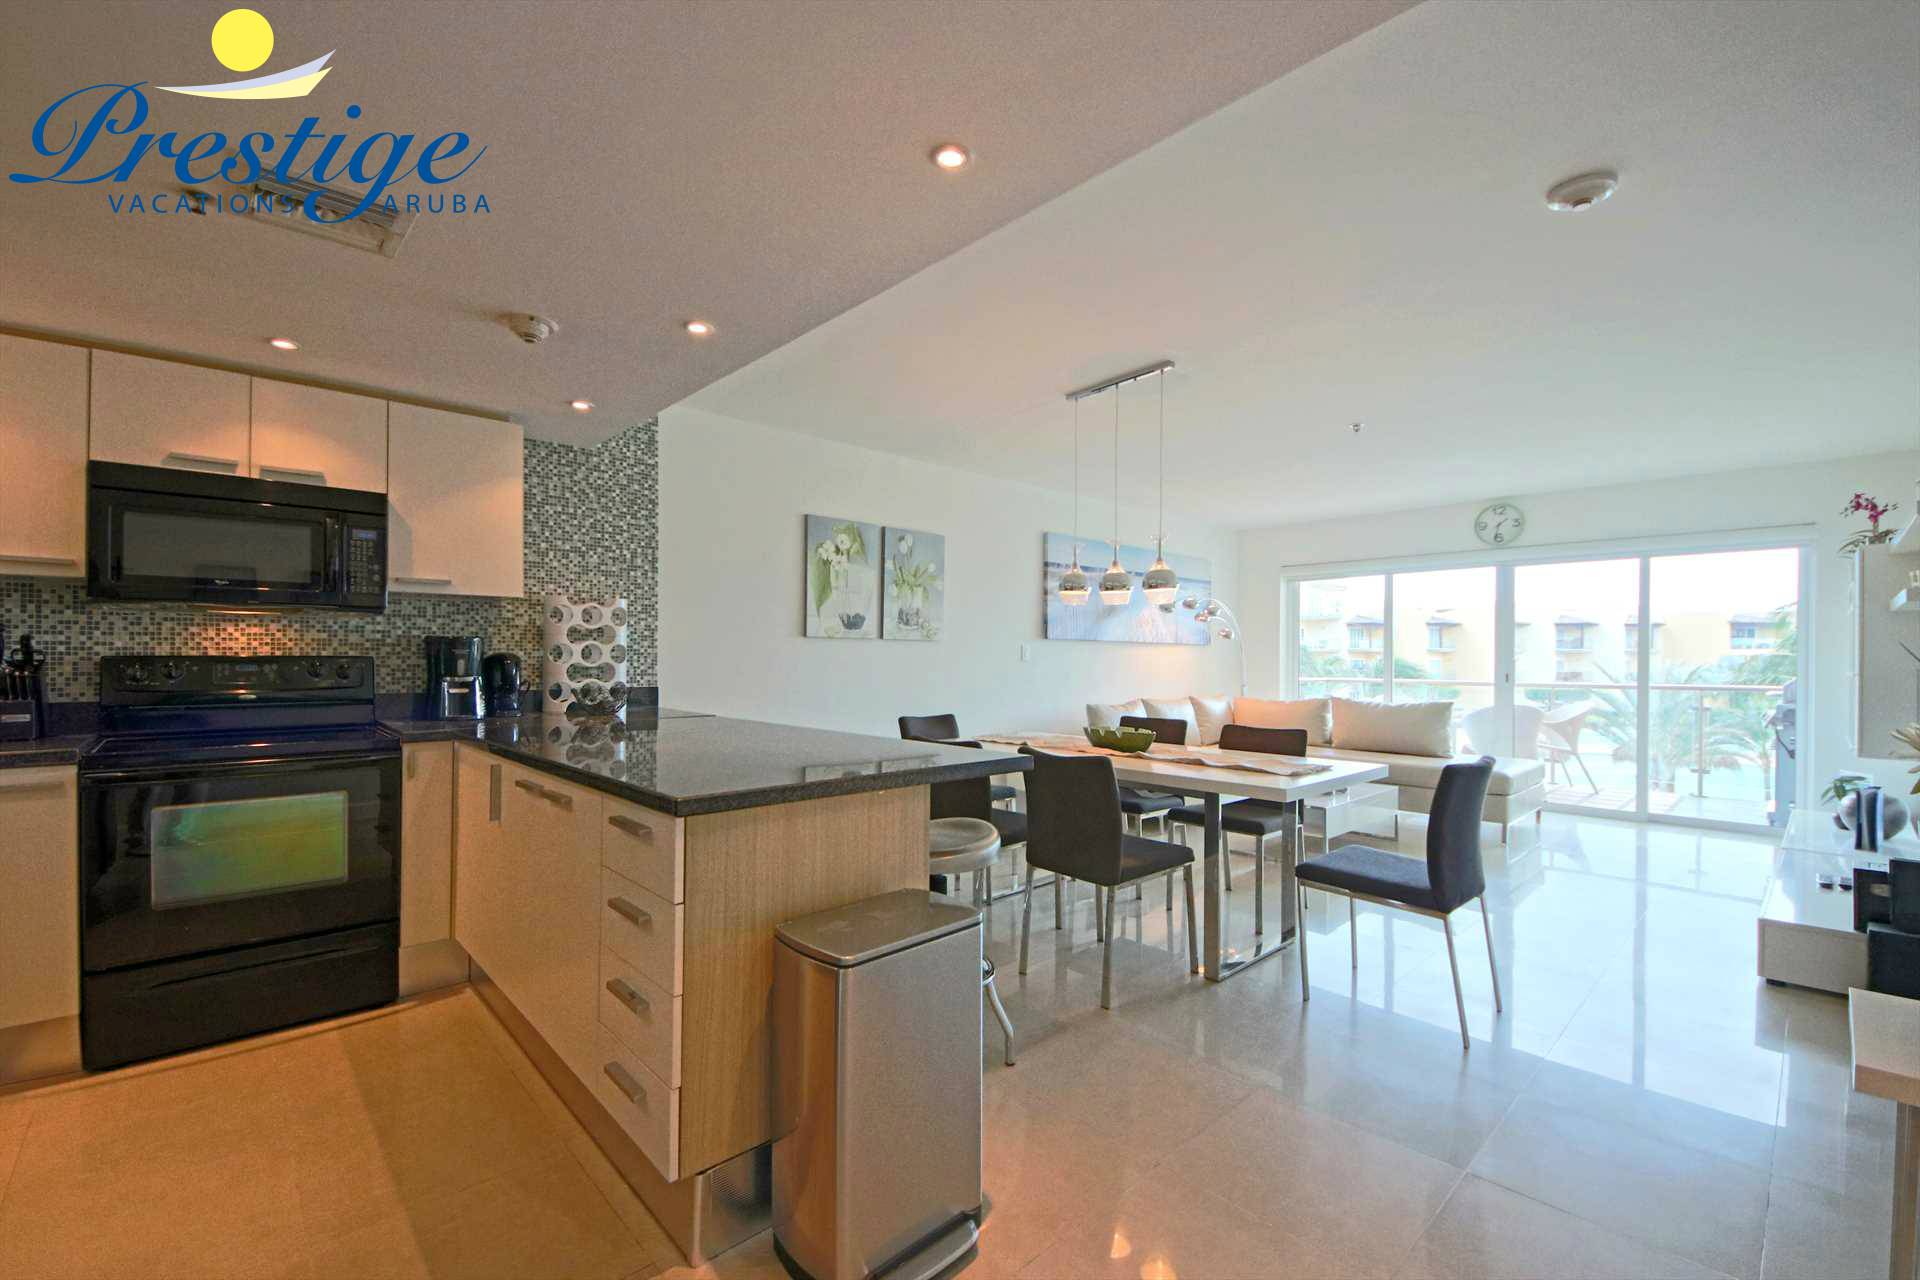 Your spacious, modern and relaxing vacation condo